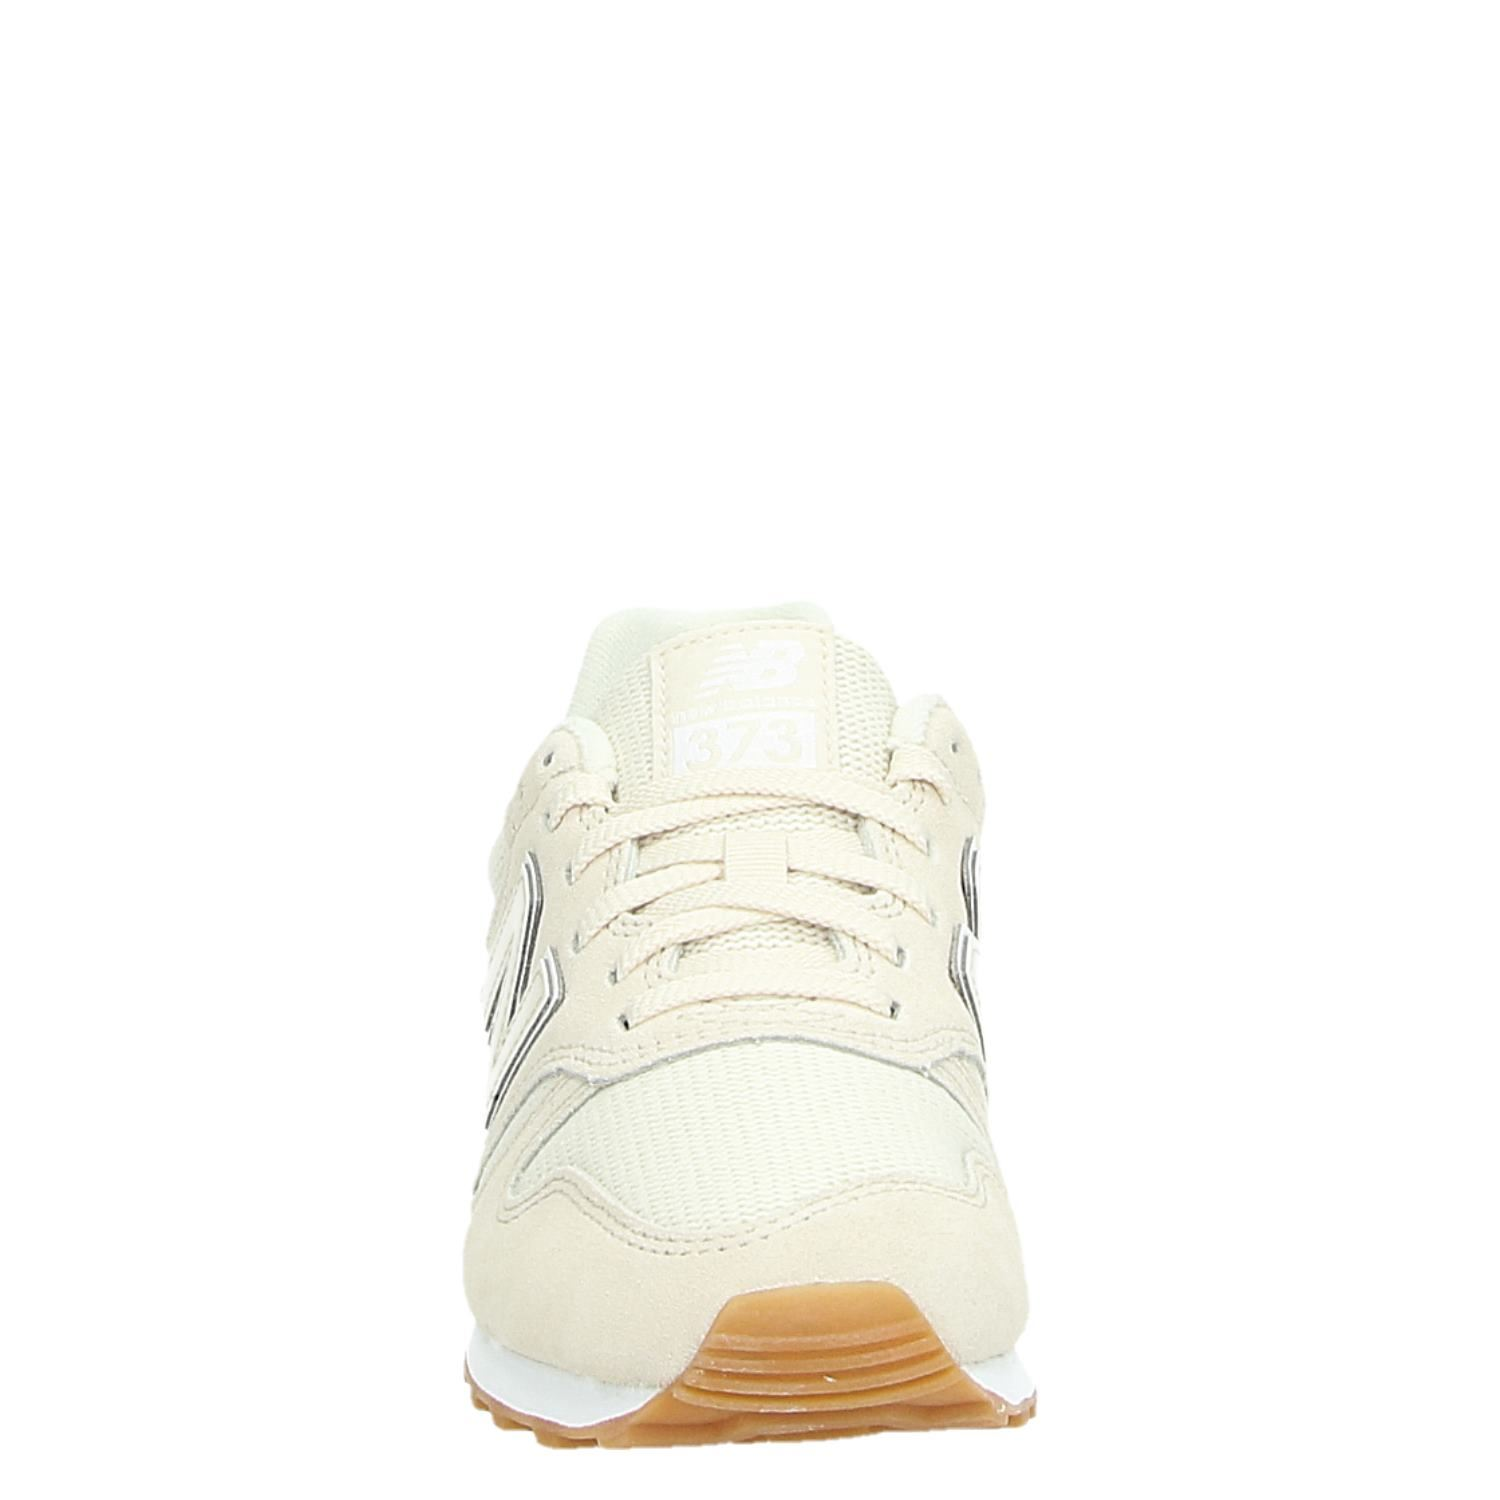 New Balance 373 dames lage sneakers ecru